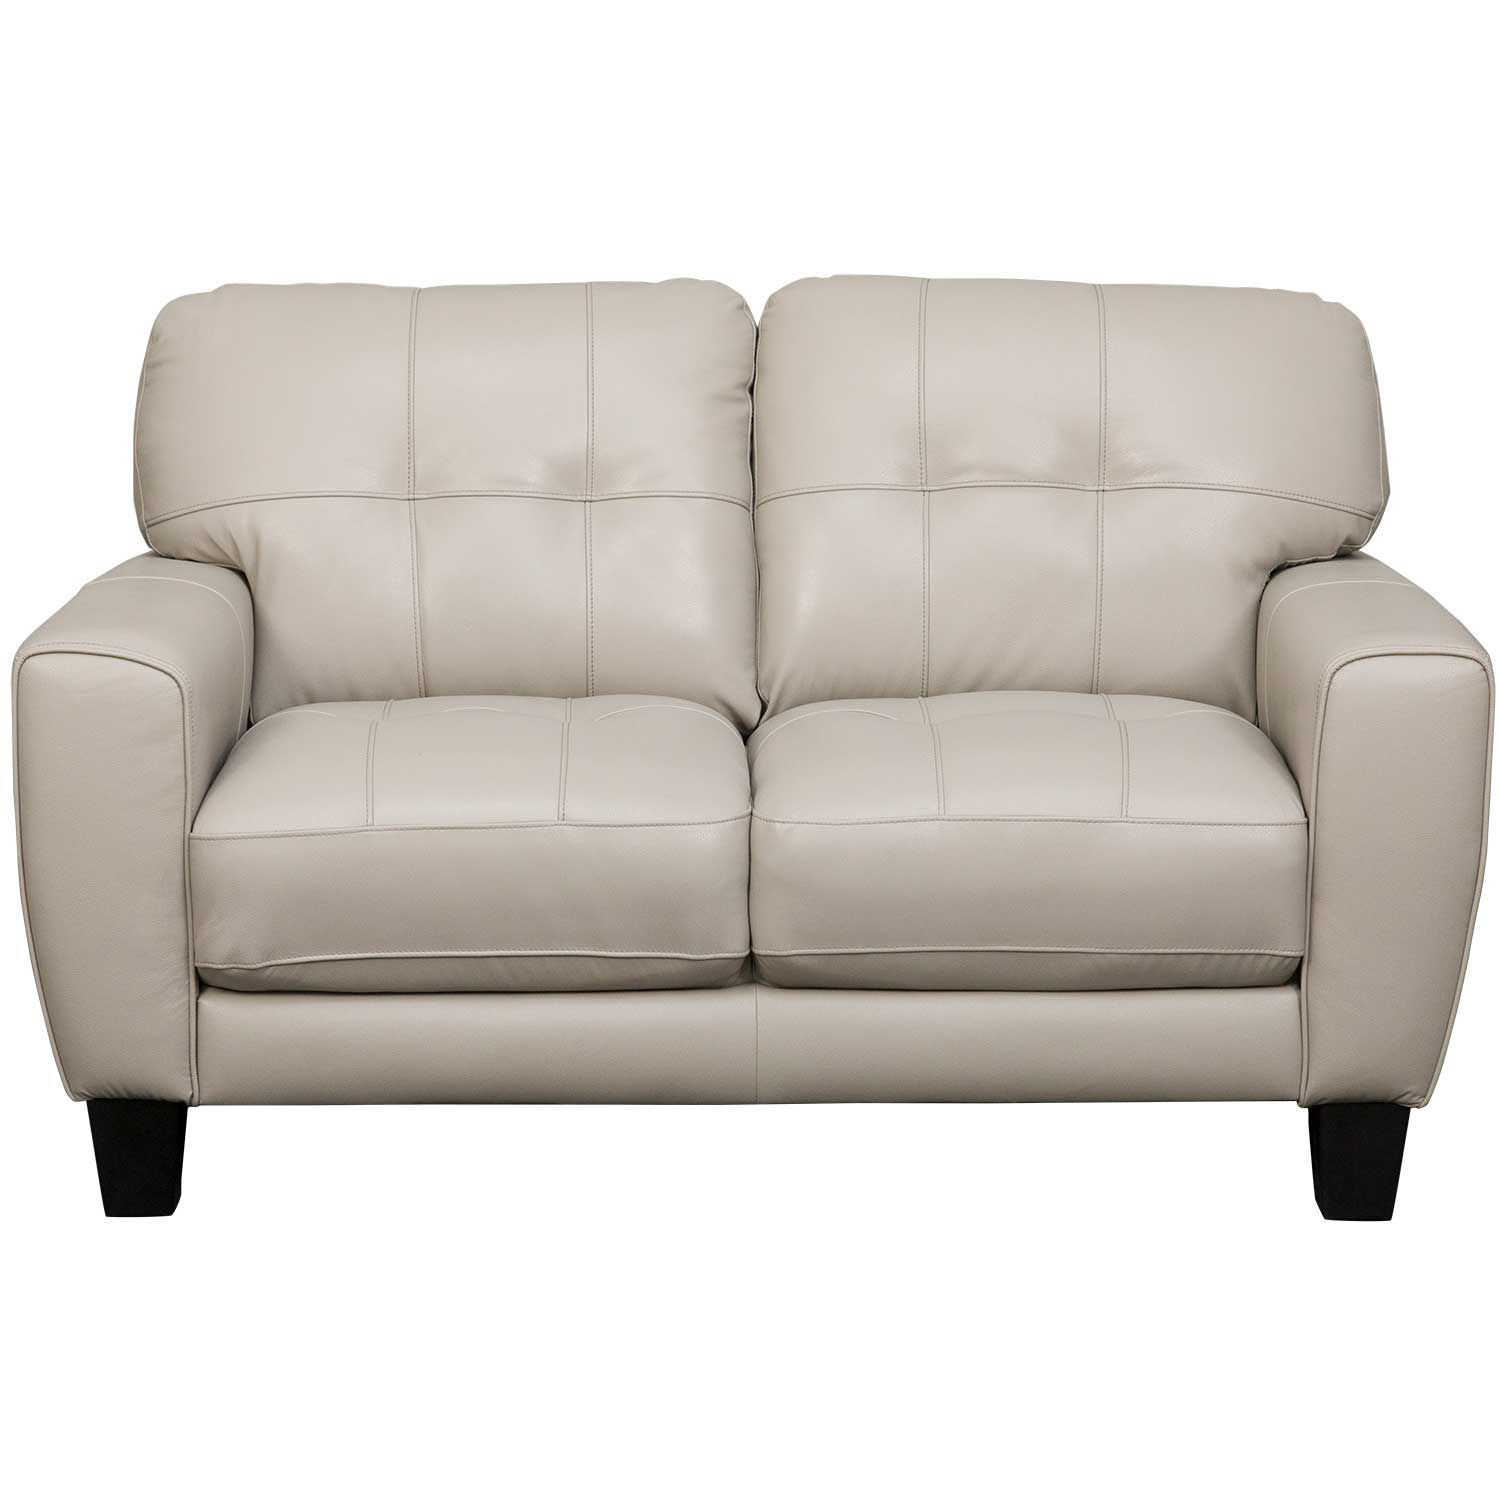 Picture of Aria Taupe Leather Loveseat